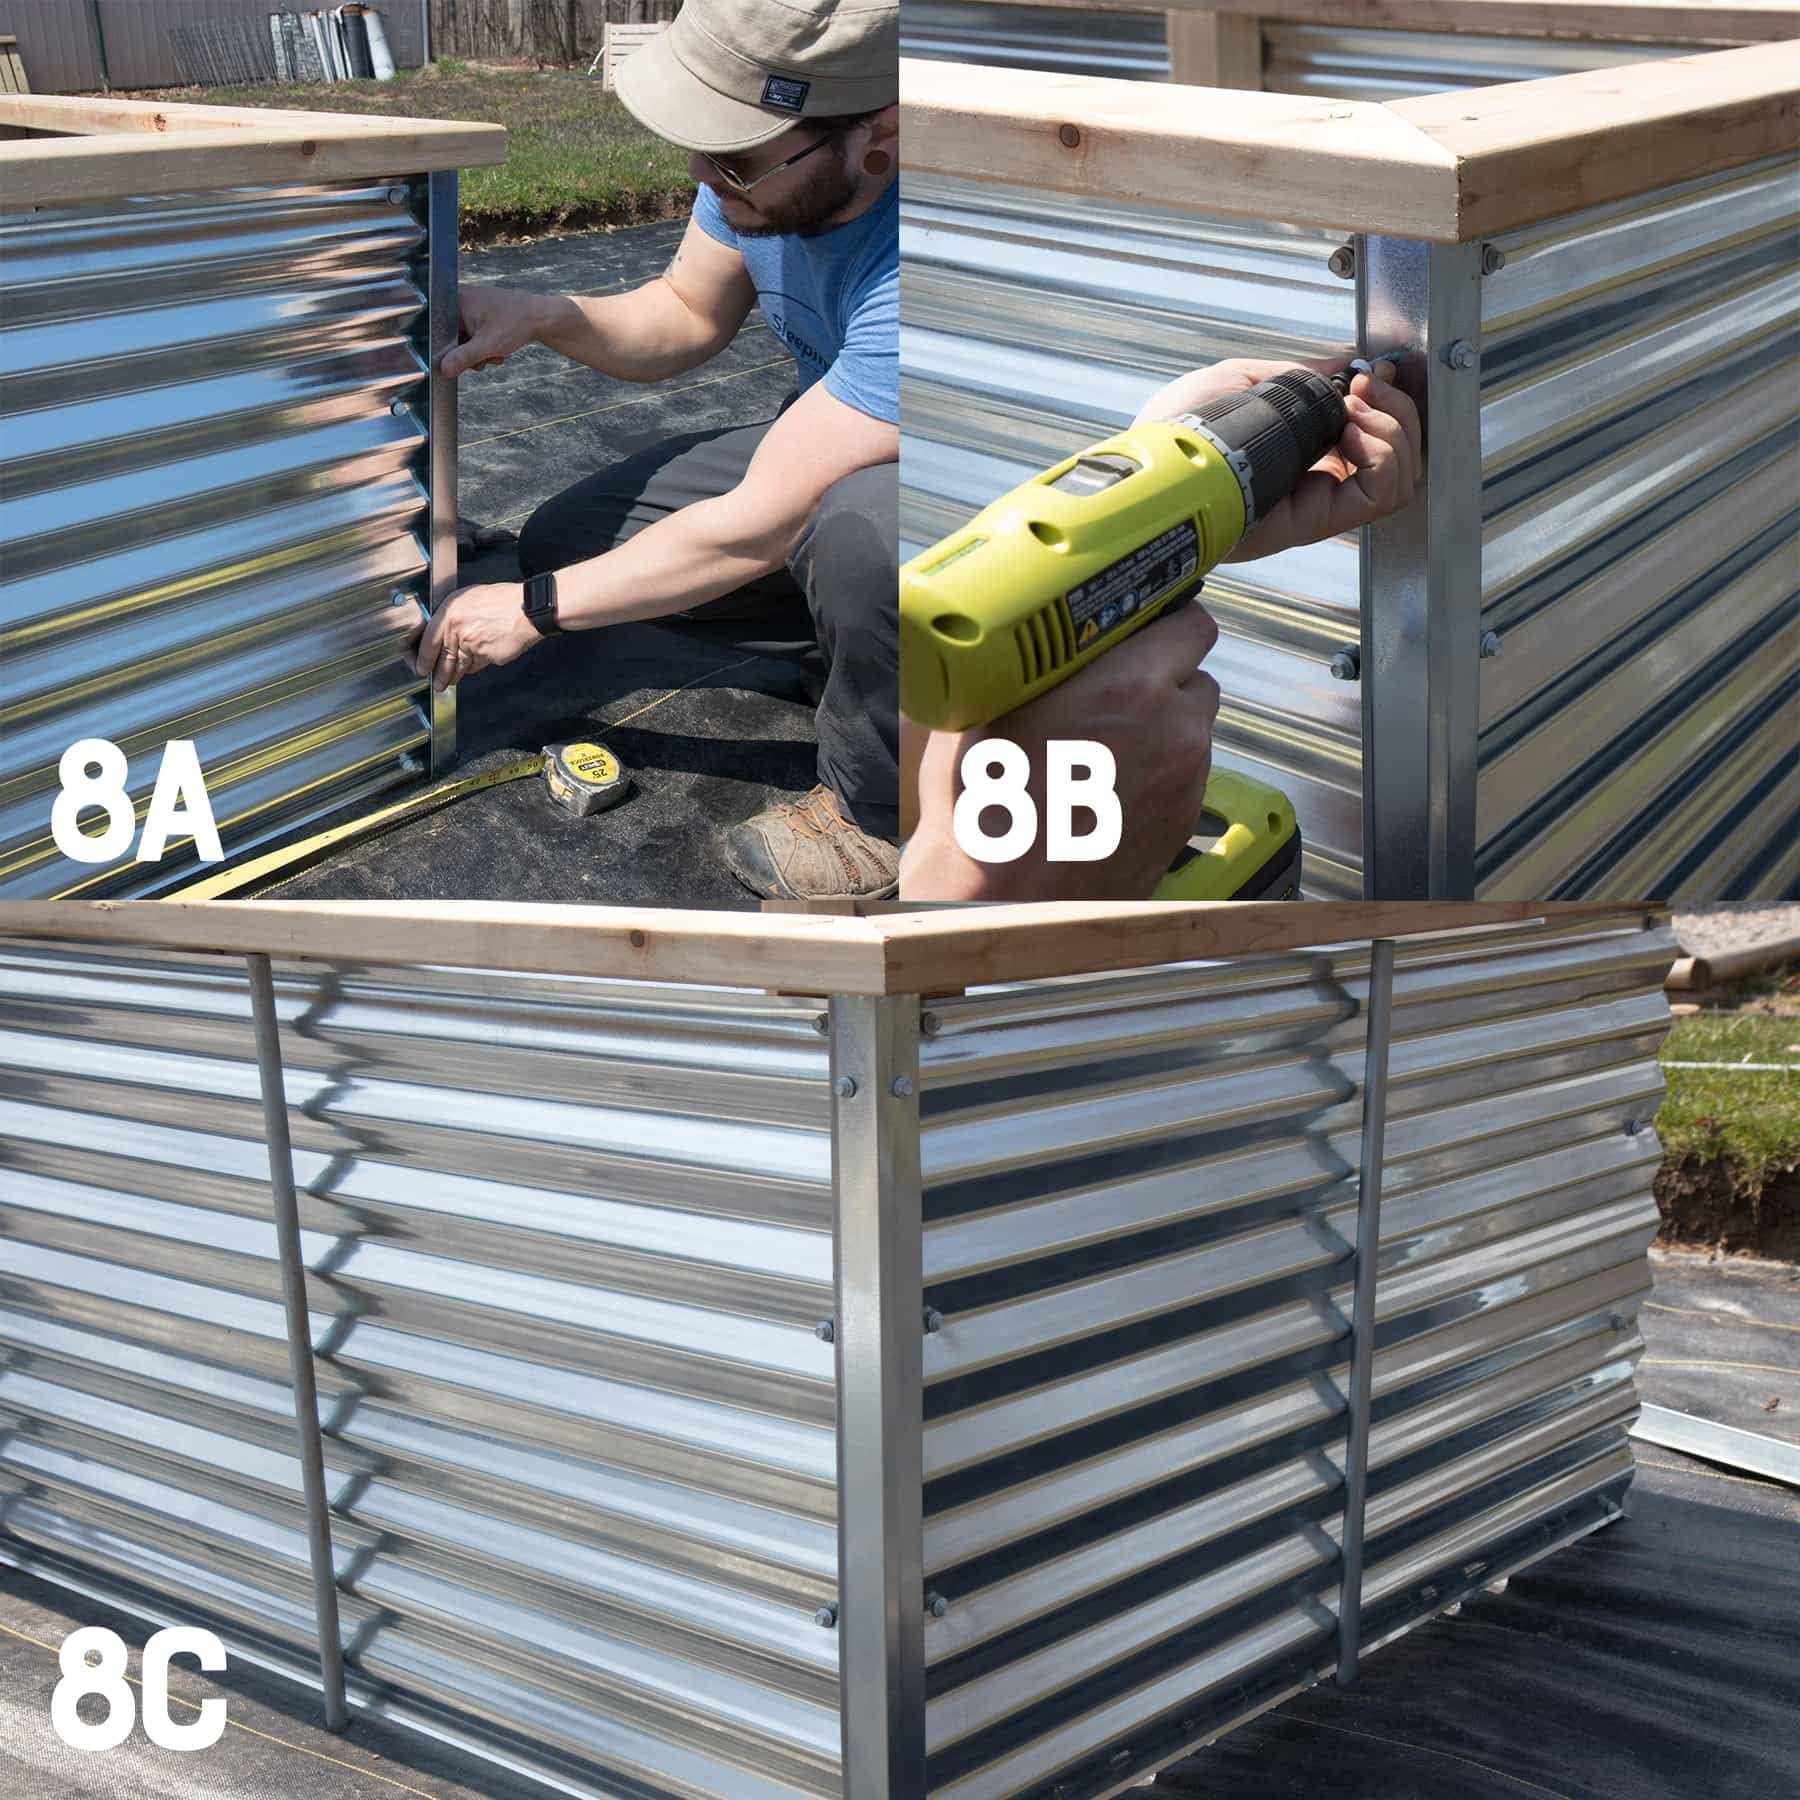 Three image collage of attaching roof edging to the corners of a galvanized steel raised bed